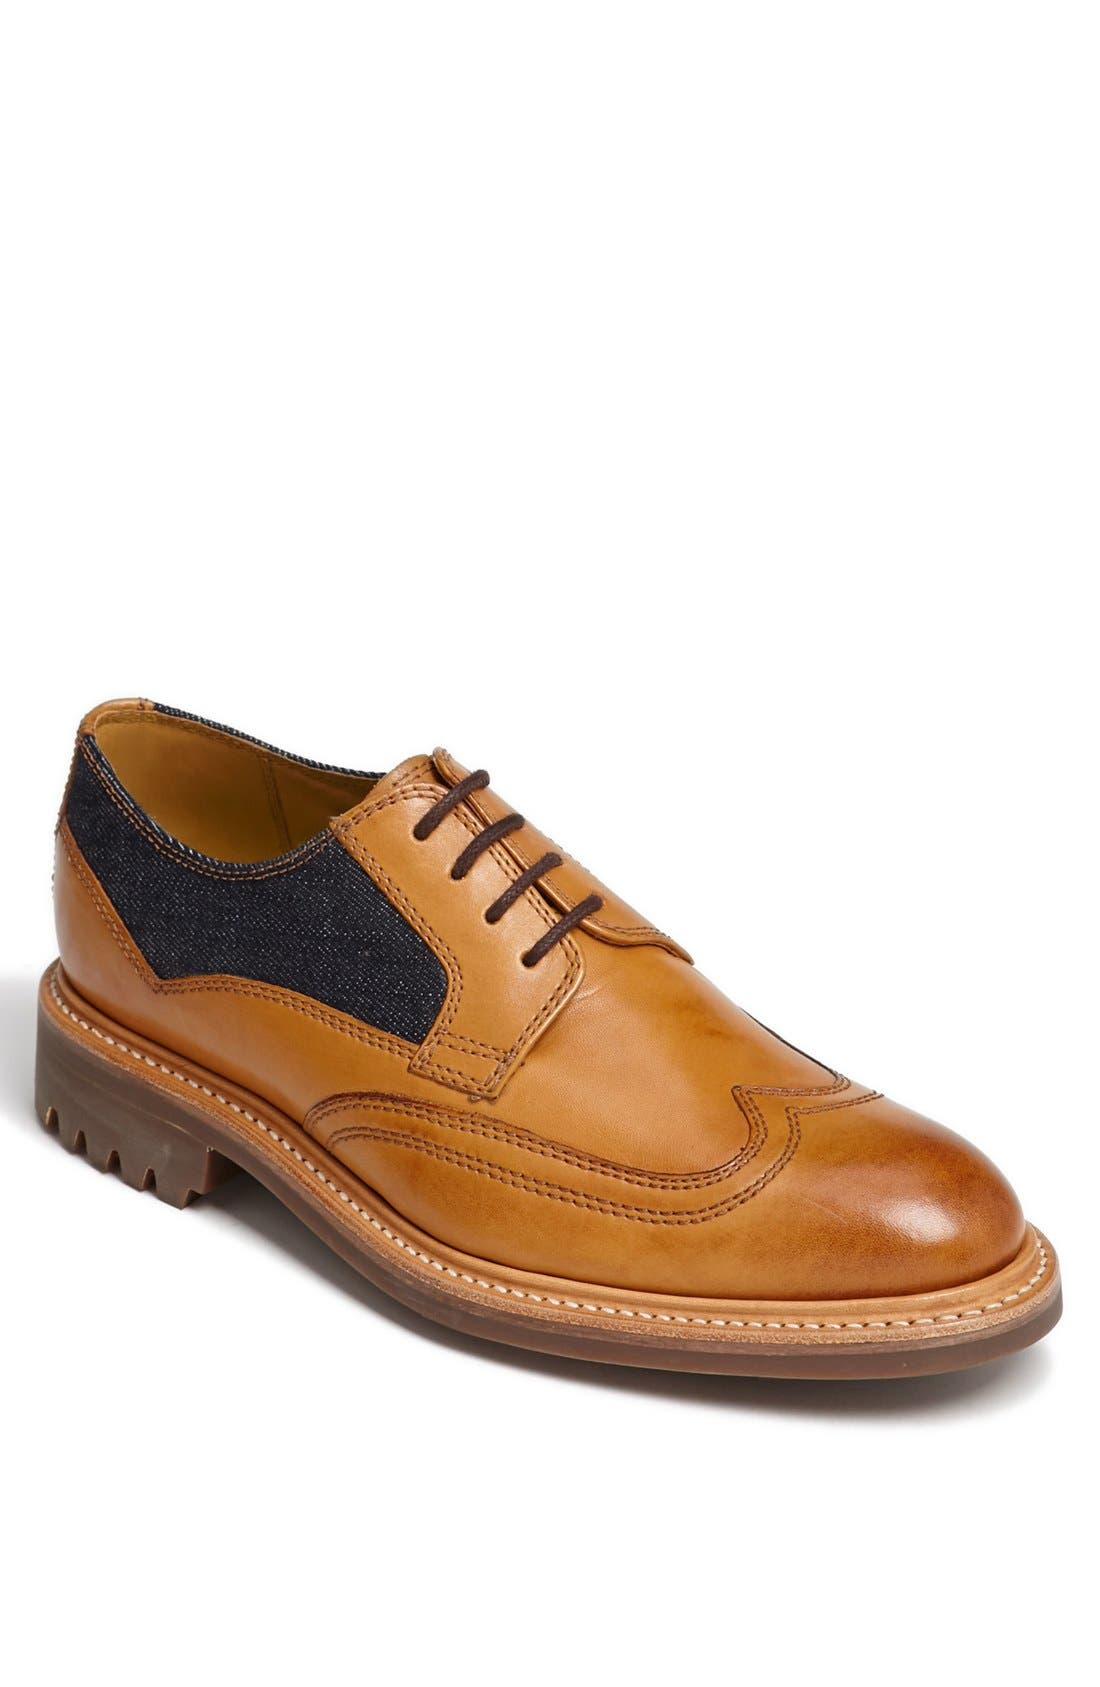 Main Image - Oliver Sweeney 'Tunstall' Wingtip